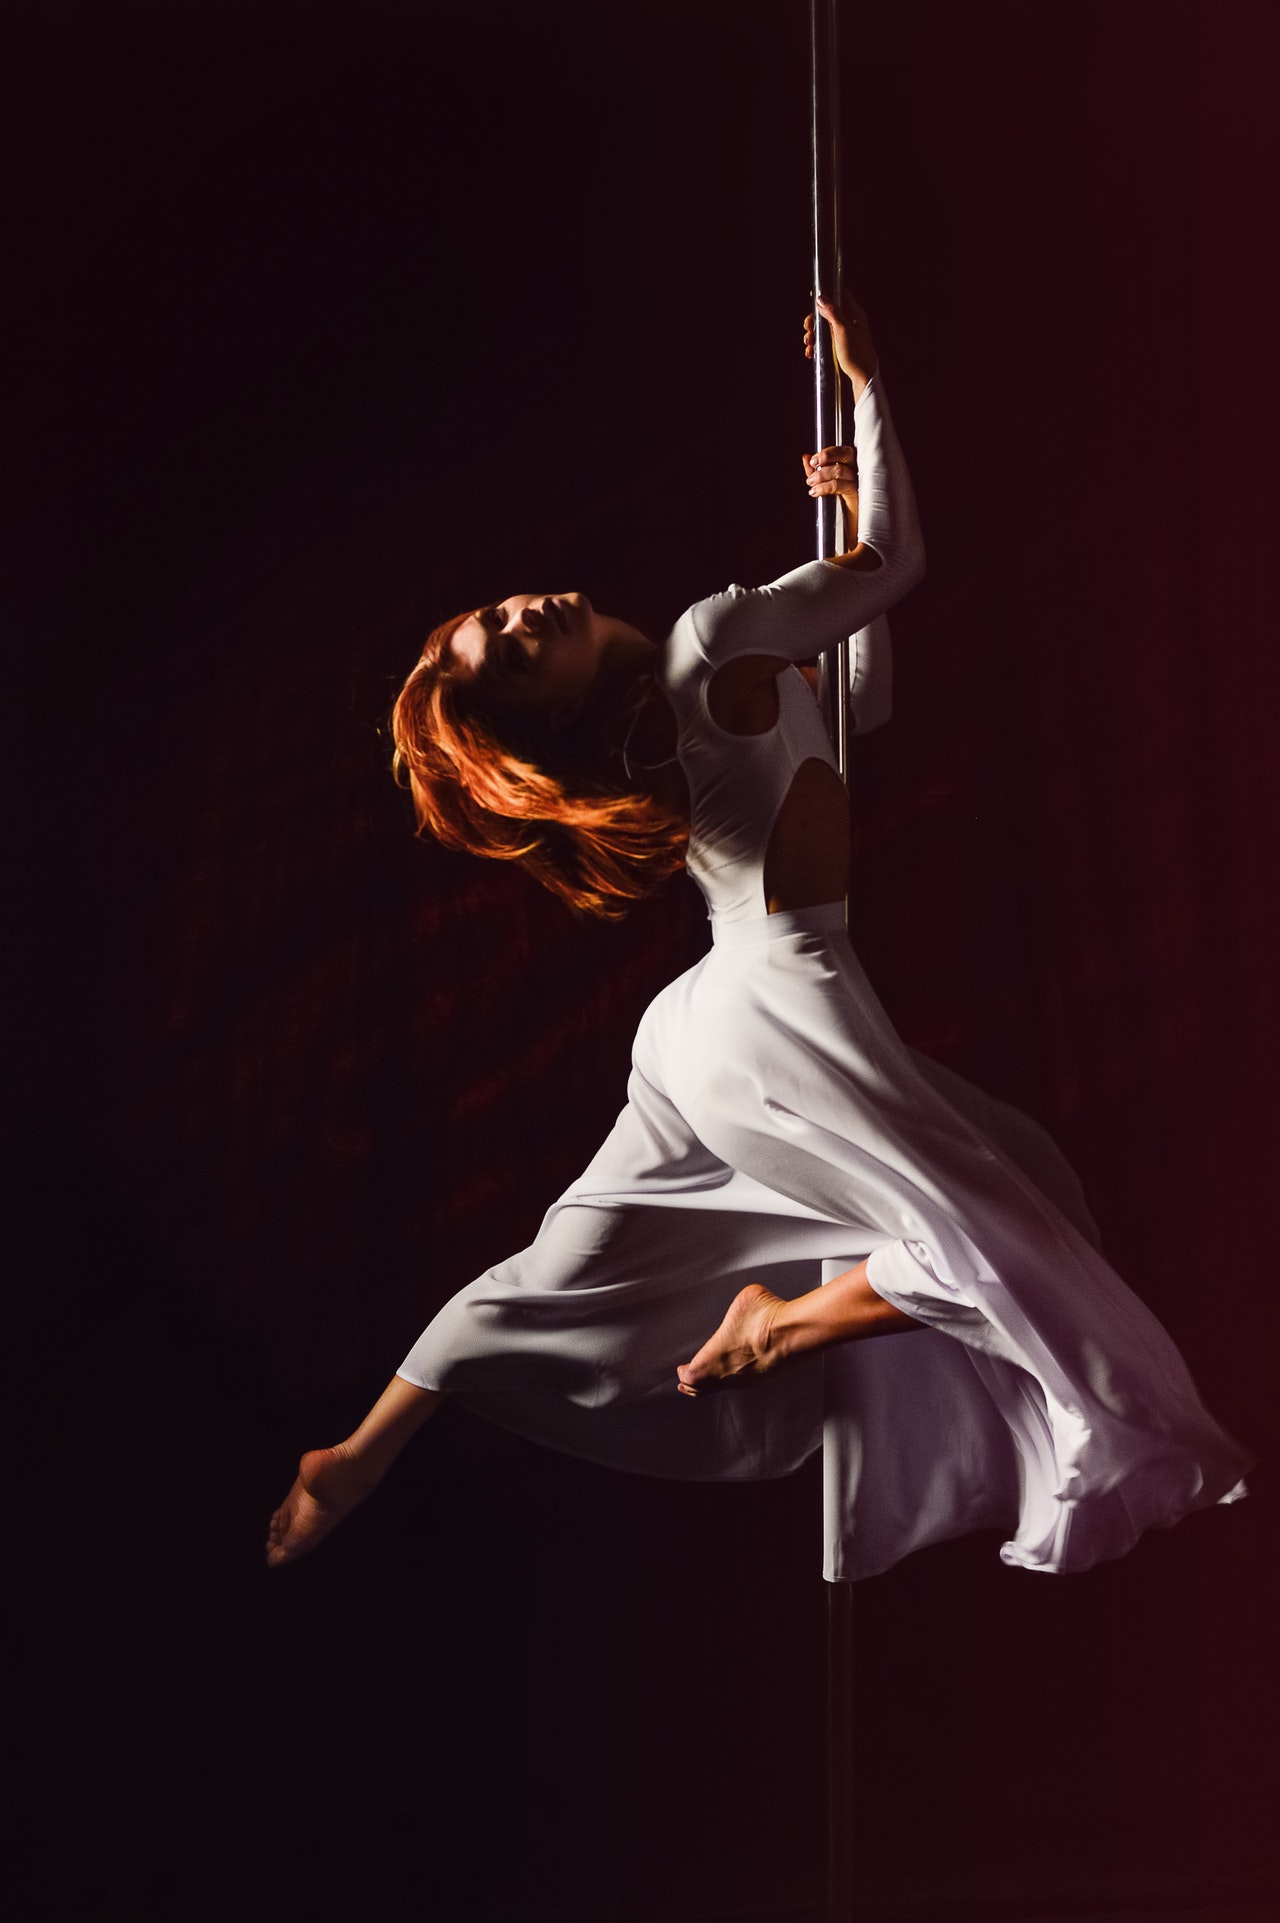 Woman in white dress pole dancing